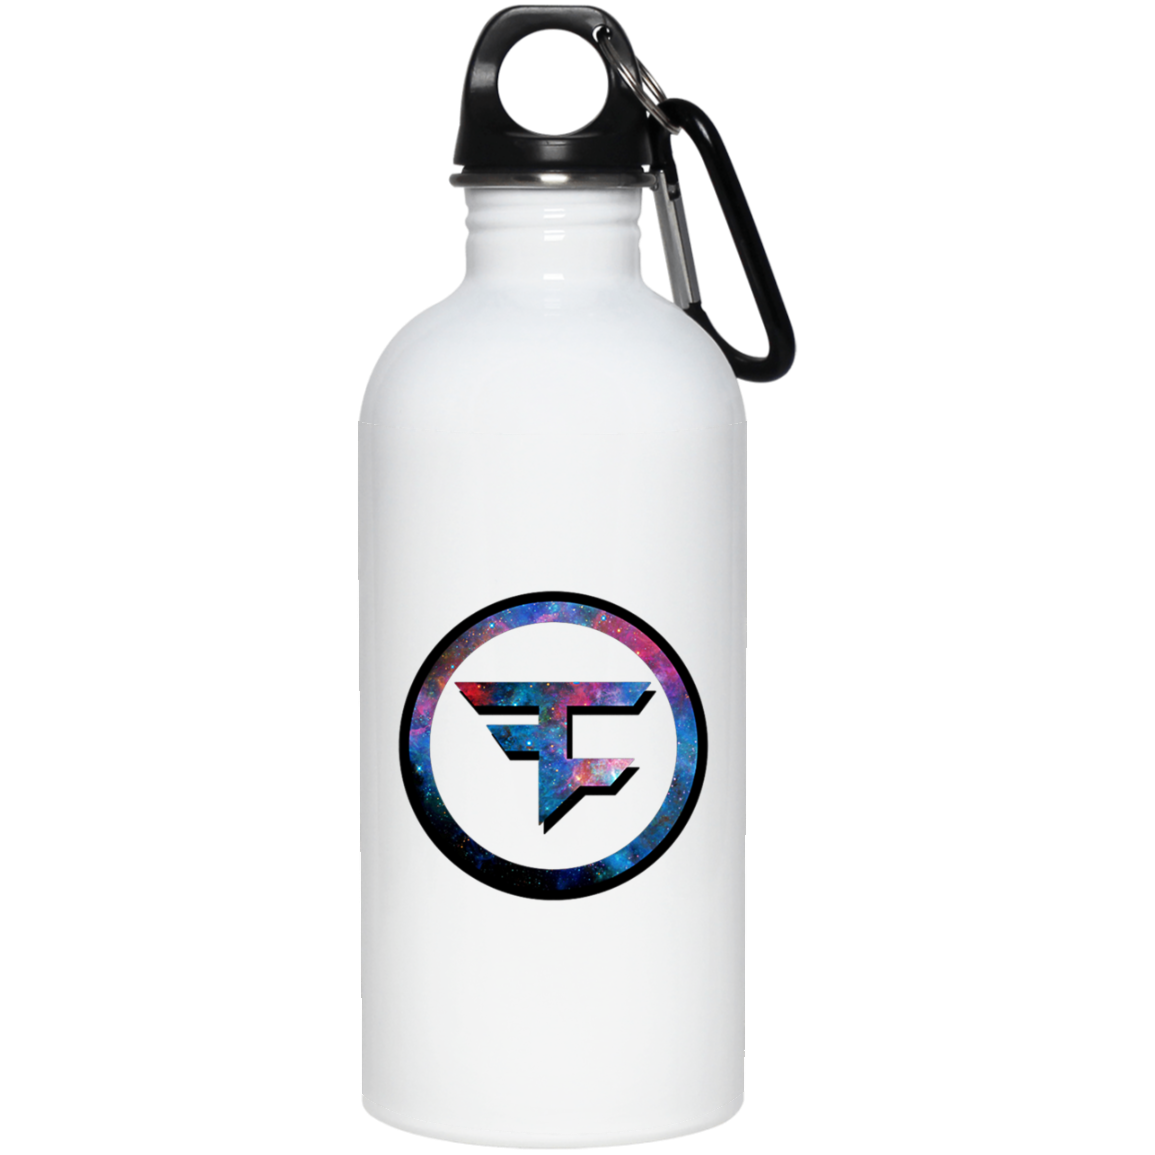 Faze Clan Galaxy 23663 20 oz. Stainless Steel Water Bottle